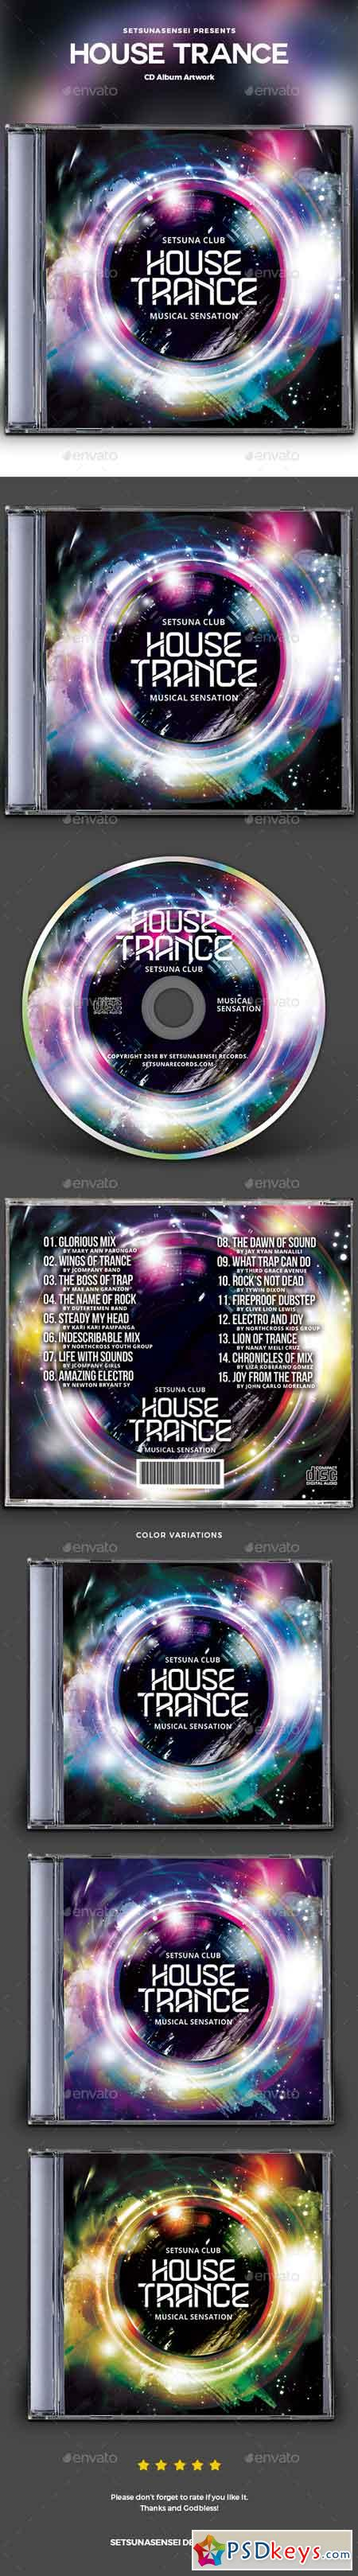 House Trance CD Album Artwork 22830517